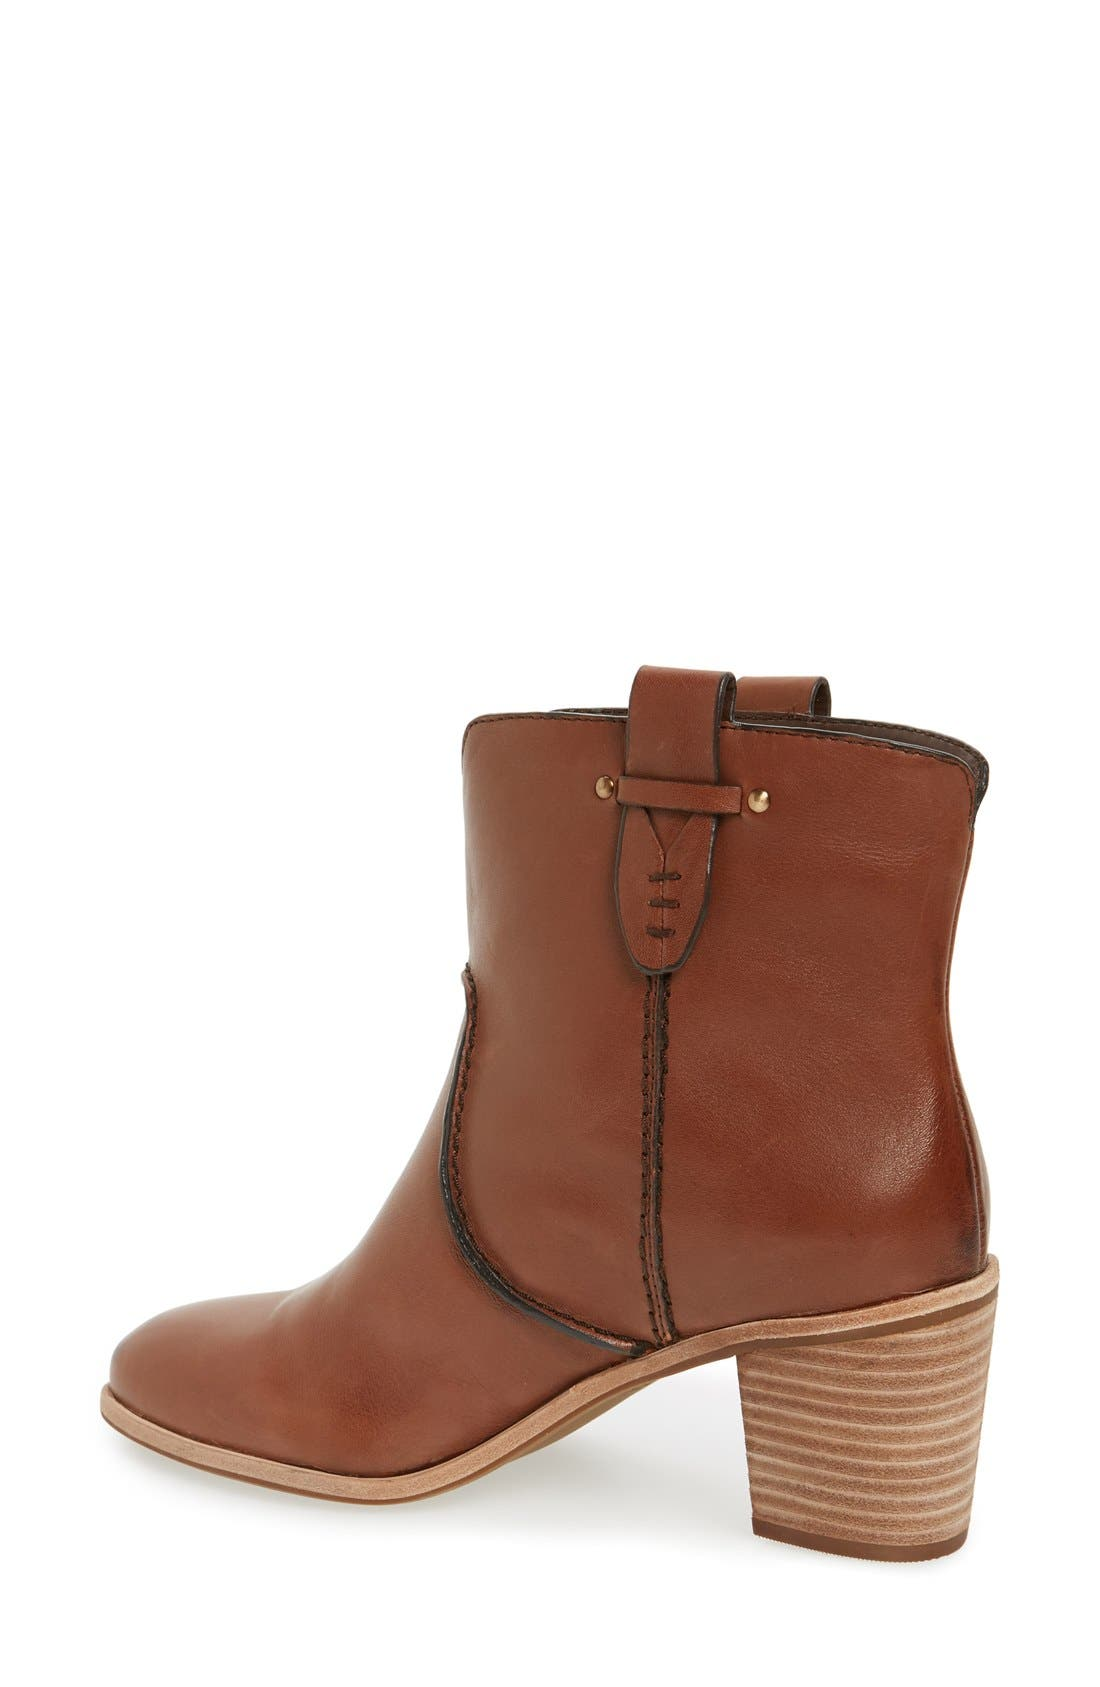 'Sophia' Pull-On Bootie,                             Alternate thumbnail 2, color,                             Whiskey Leather